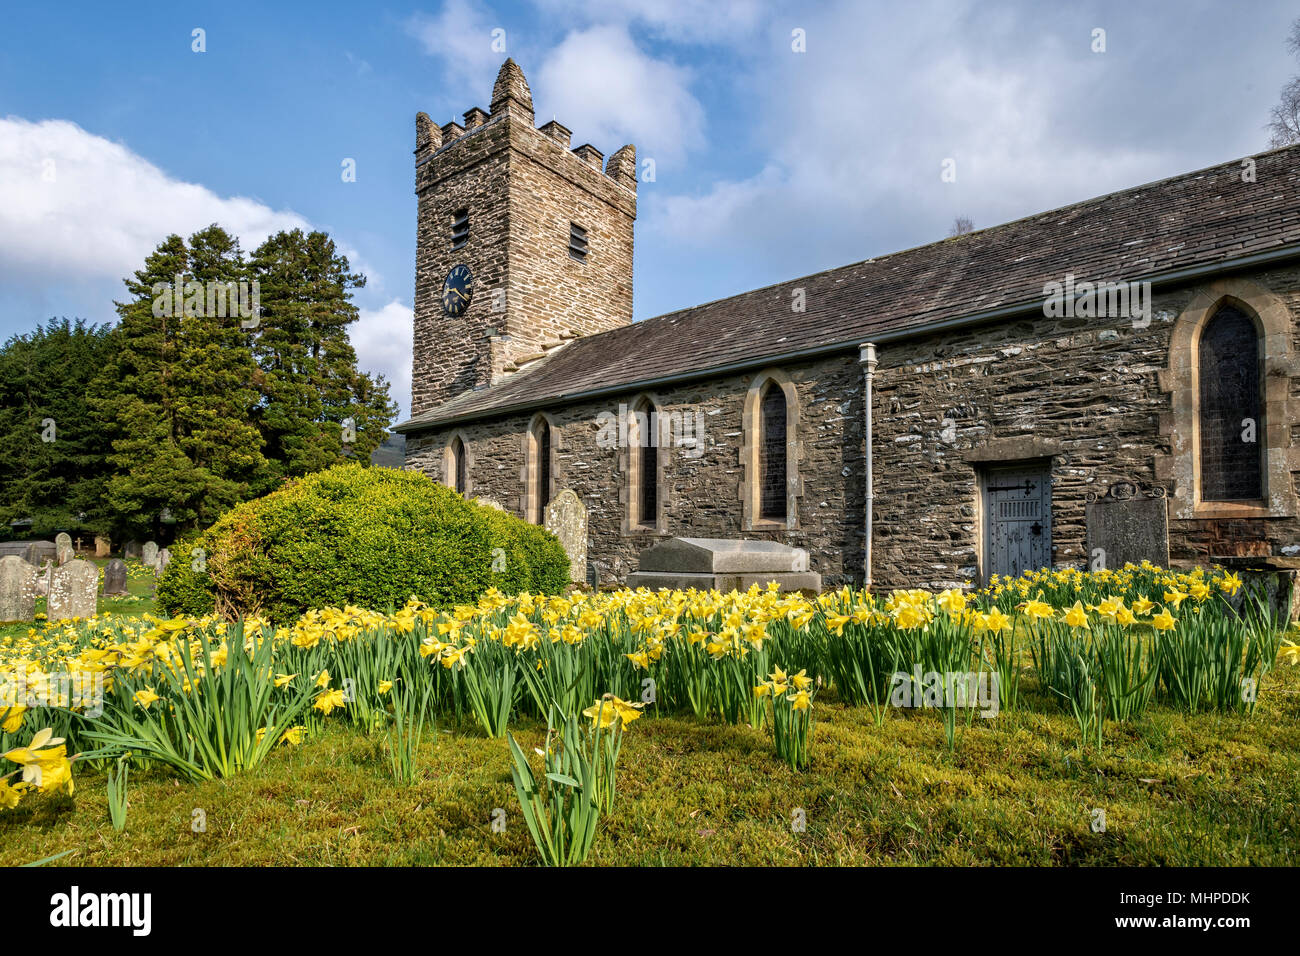 Troutbeck church surrounded by Daffodils - Stock Image